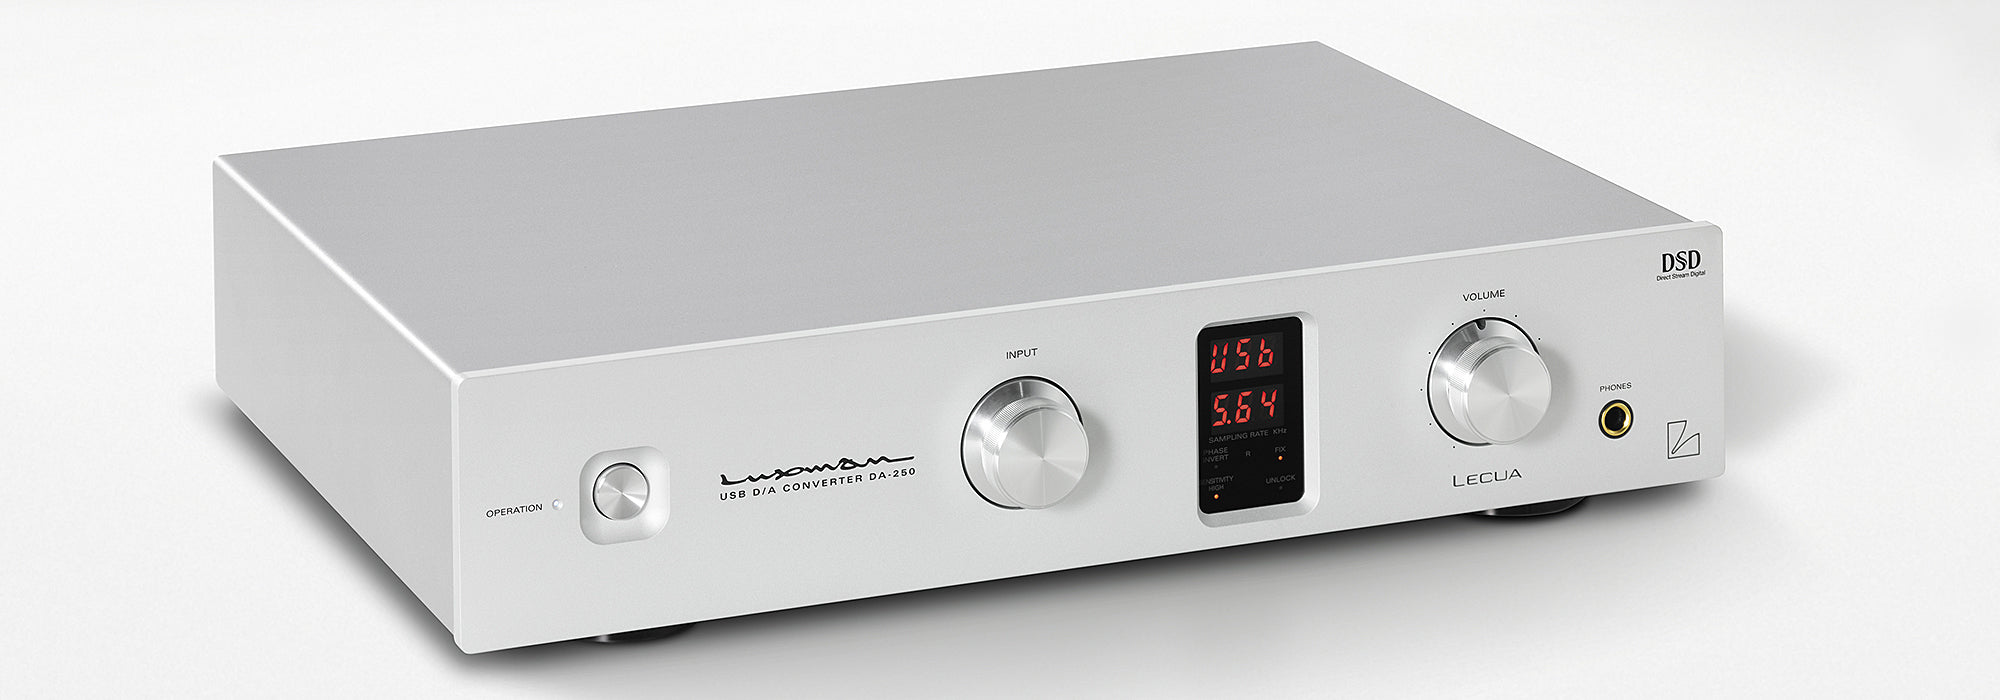 Luxman DA-250 USB Digital to Analog Converter